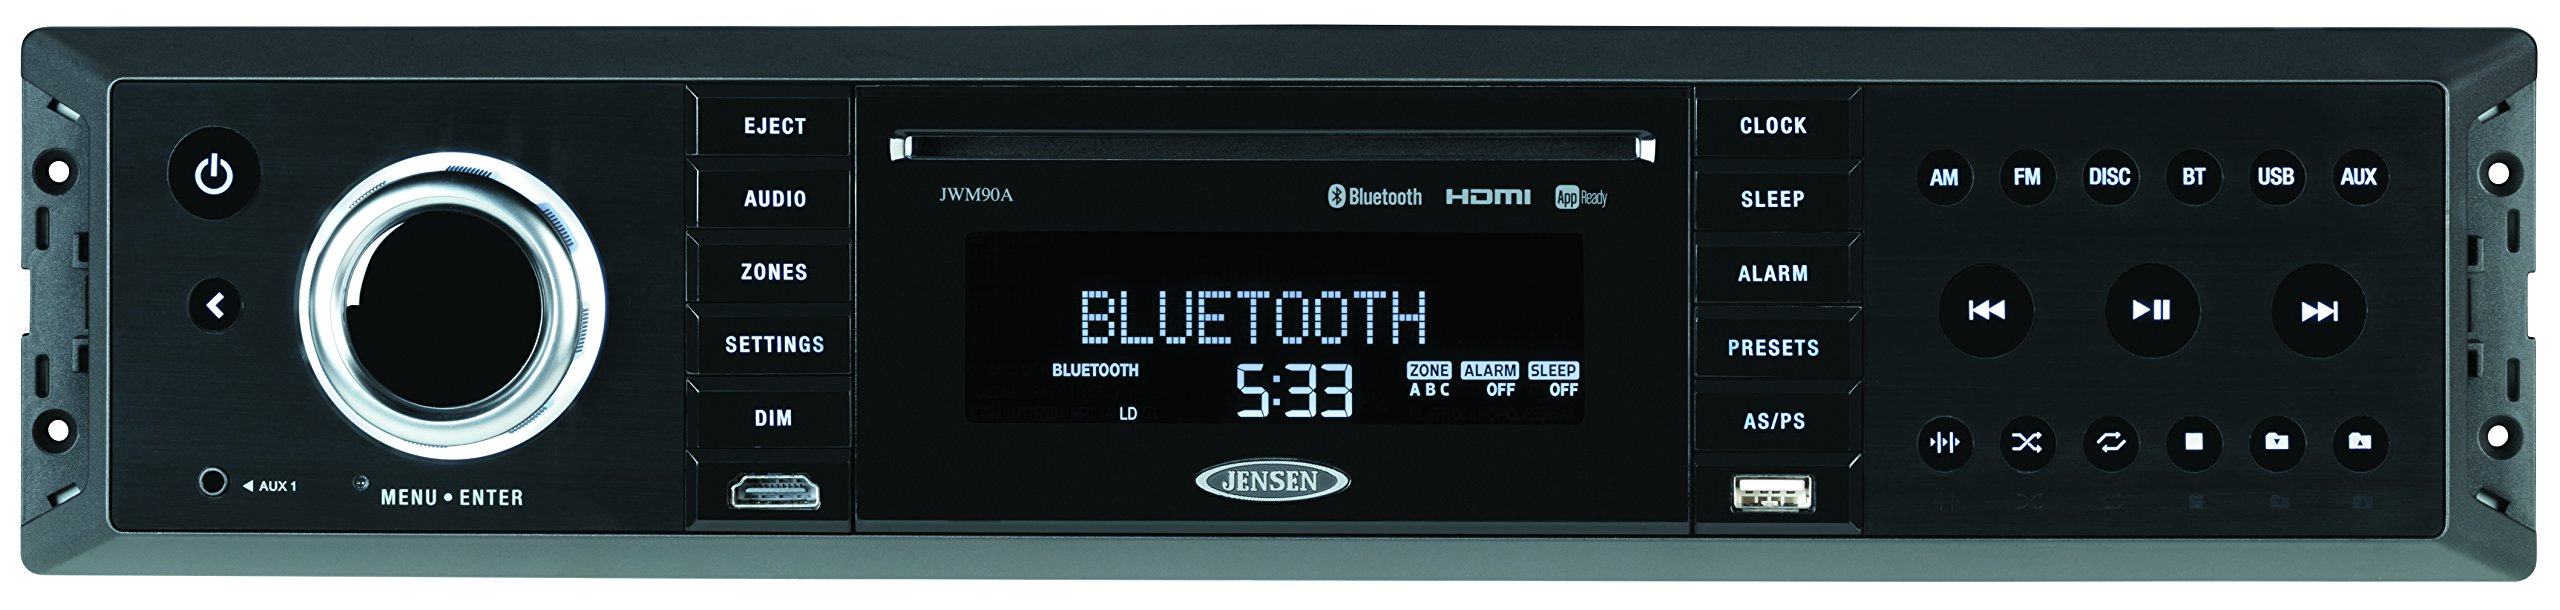 JENSEN JWM90A Slimline 3-Zone Source Theater-Style Bluetooth Wallmount Stereo with App Control, DVD/CD-R/RW & MP3 Compatible, Dual HDMI Video Output, HDMI ARC, USB Play MP3/WMA Files, Rear RCA In/Out by Jensen